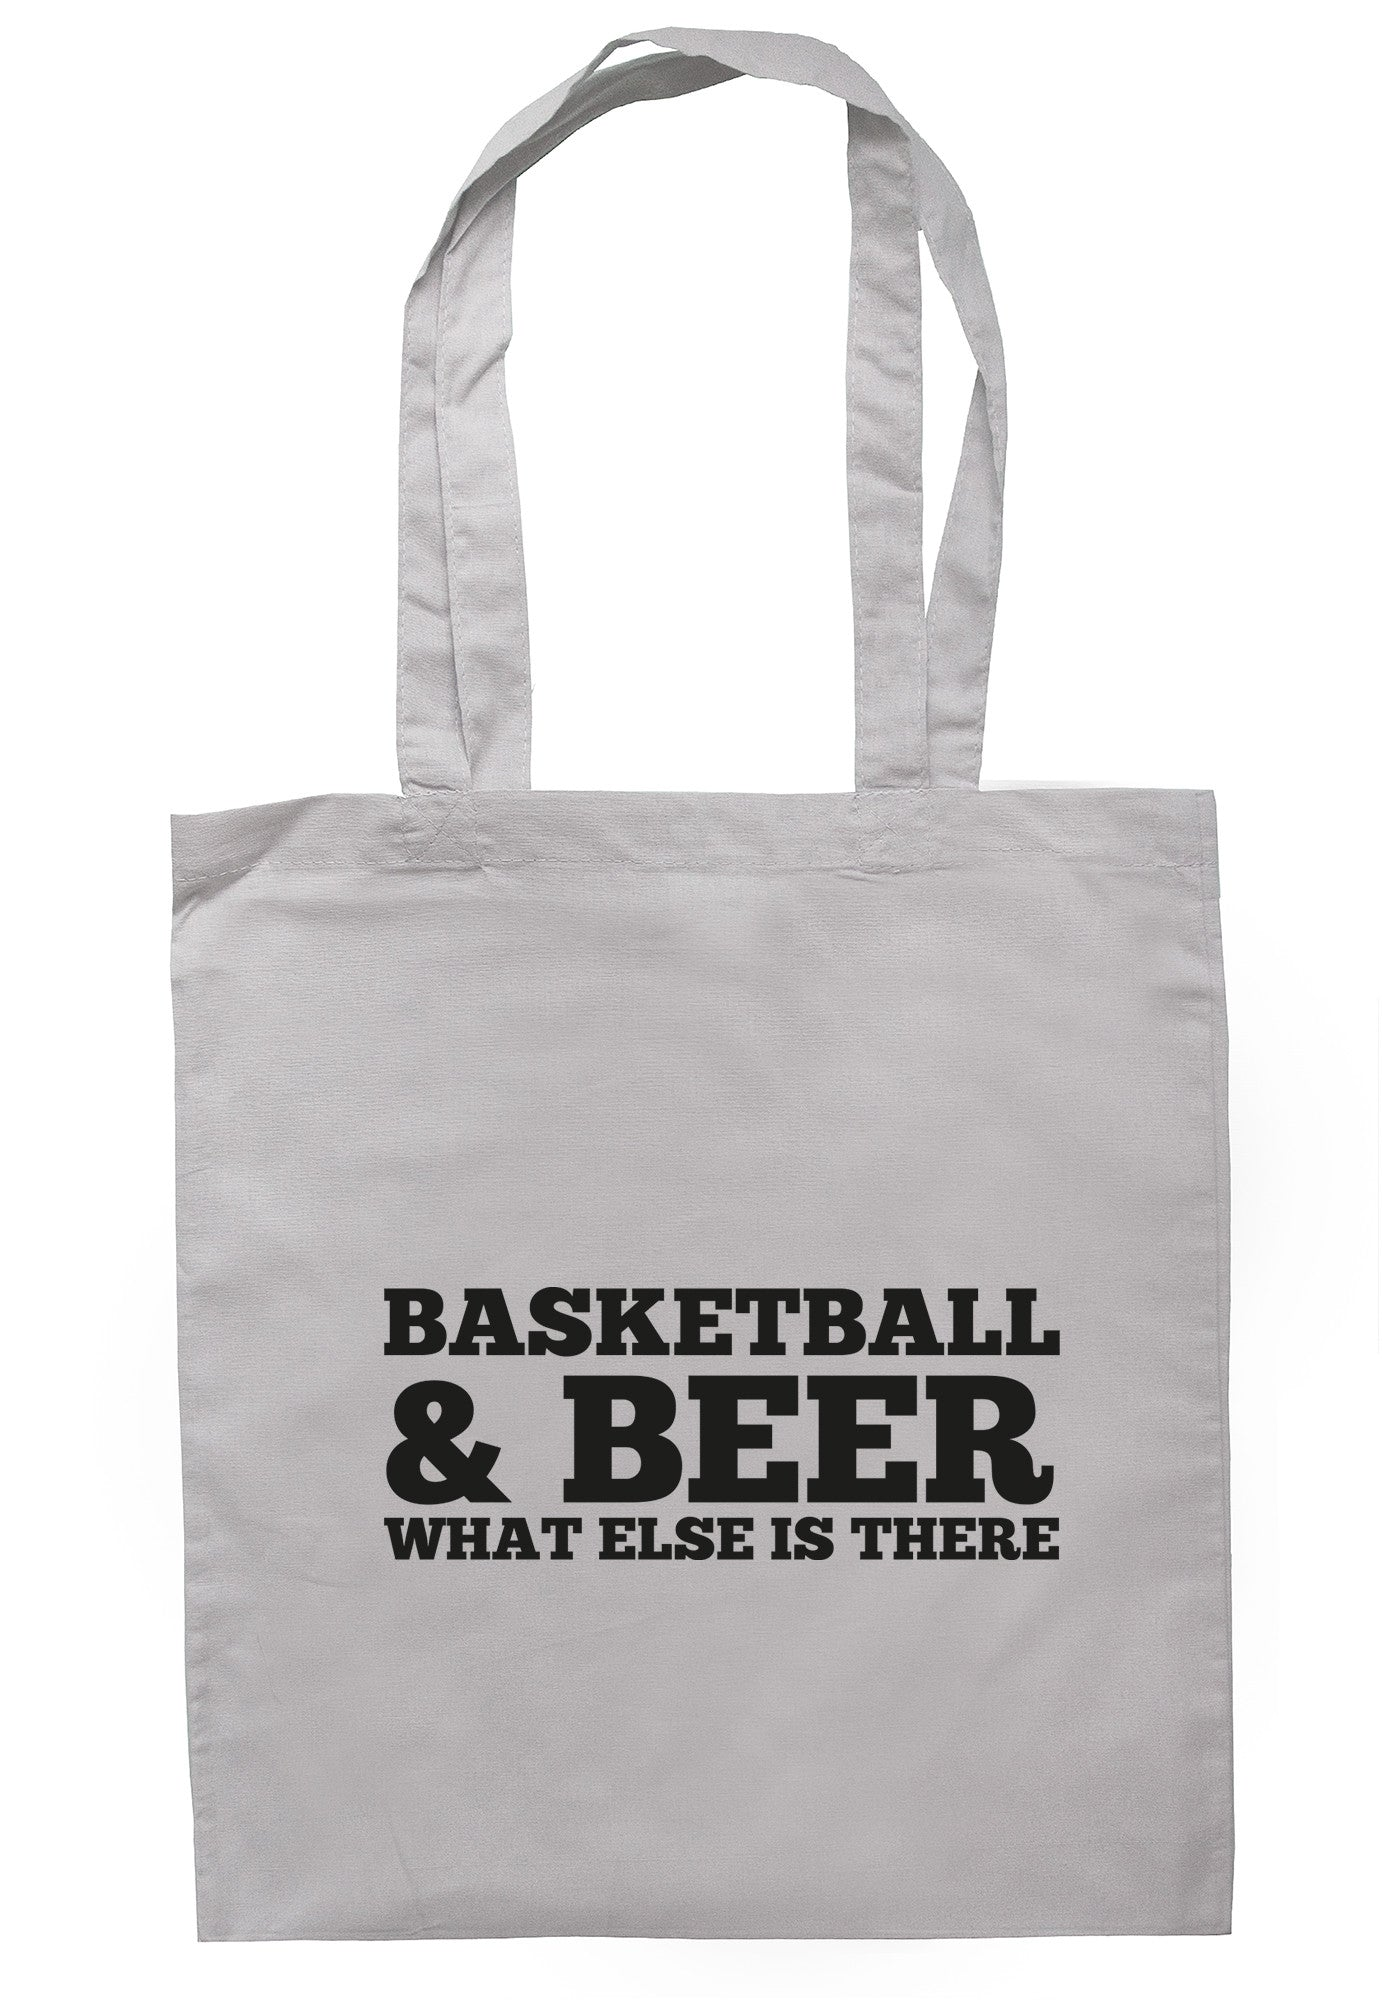 Basketball & Beer What Else Is There Tote Bag TB0468 - Illustrated Identity Ltd.